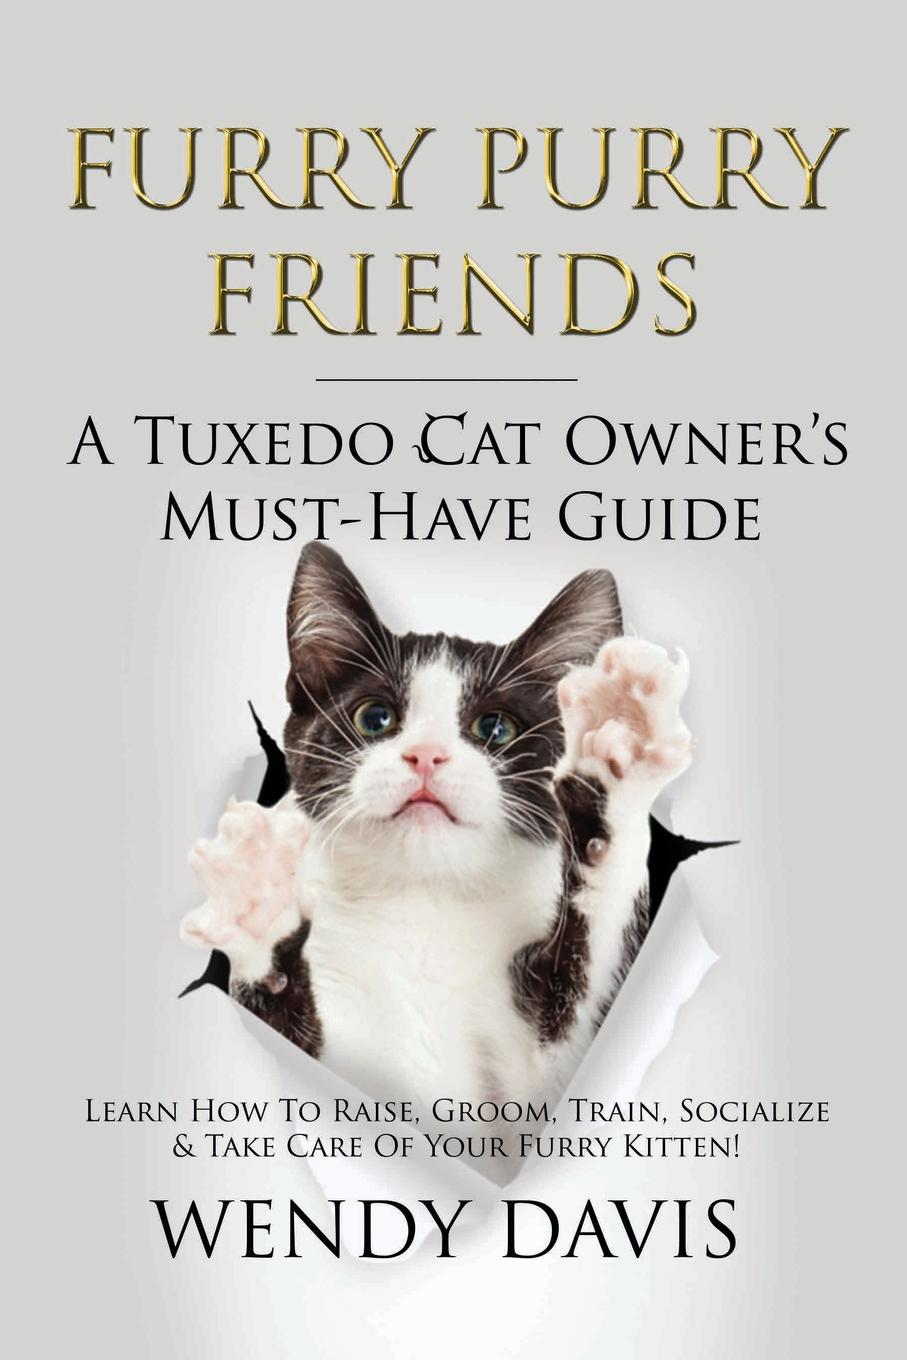 Wendy Davis Furry Purry Friends - A Tuxedo Cat Owner.s Must-Have Guide. Learn How To Raise, Groom, Train, Socialize . Take Care Of Your Furry Kitten. pete matthew the meaningful money handbook everything you need to know and everything you need to do to secure your financial future